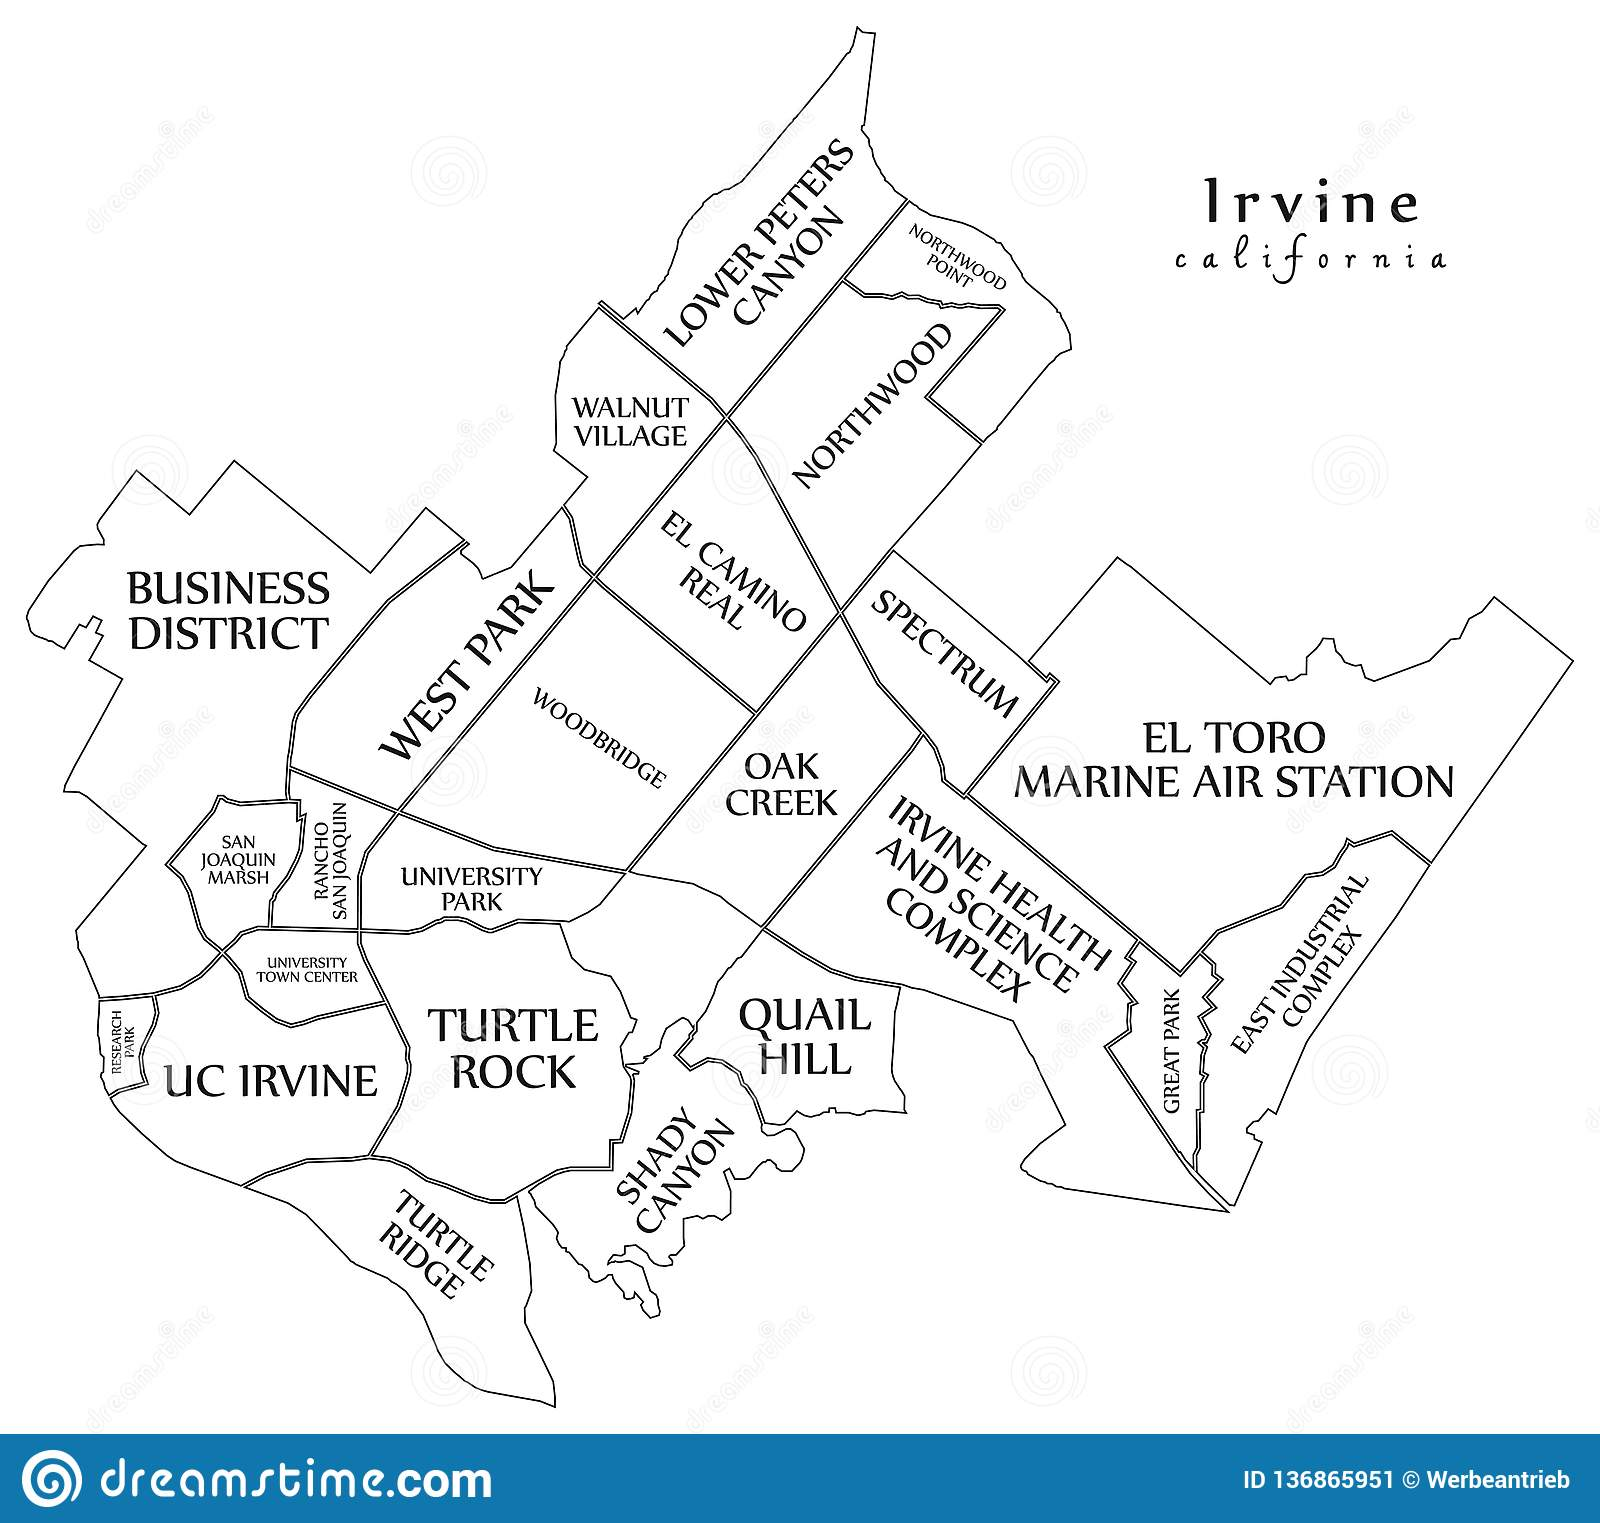 Modern City Map - Irvine California City Of The USA With ... on